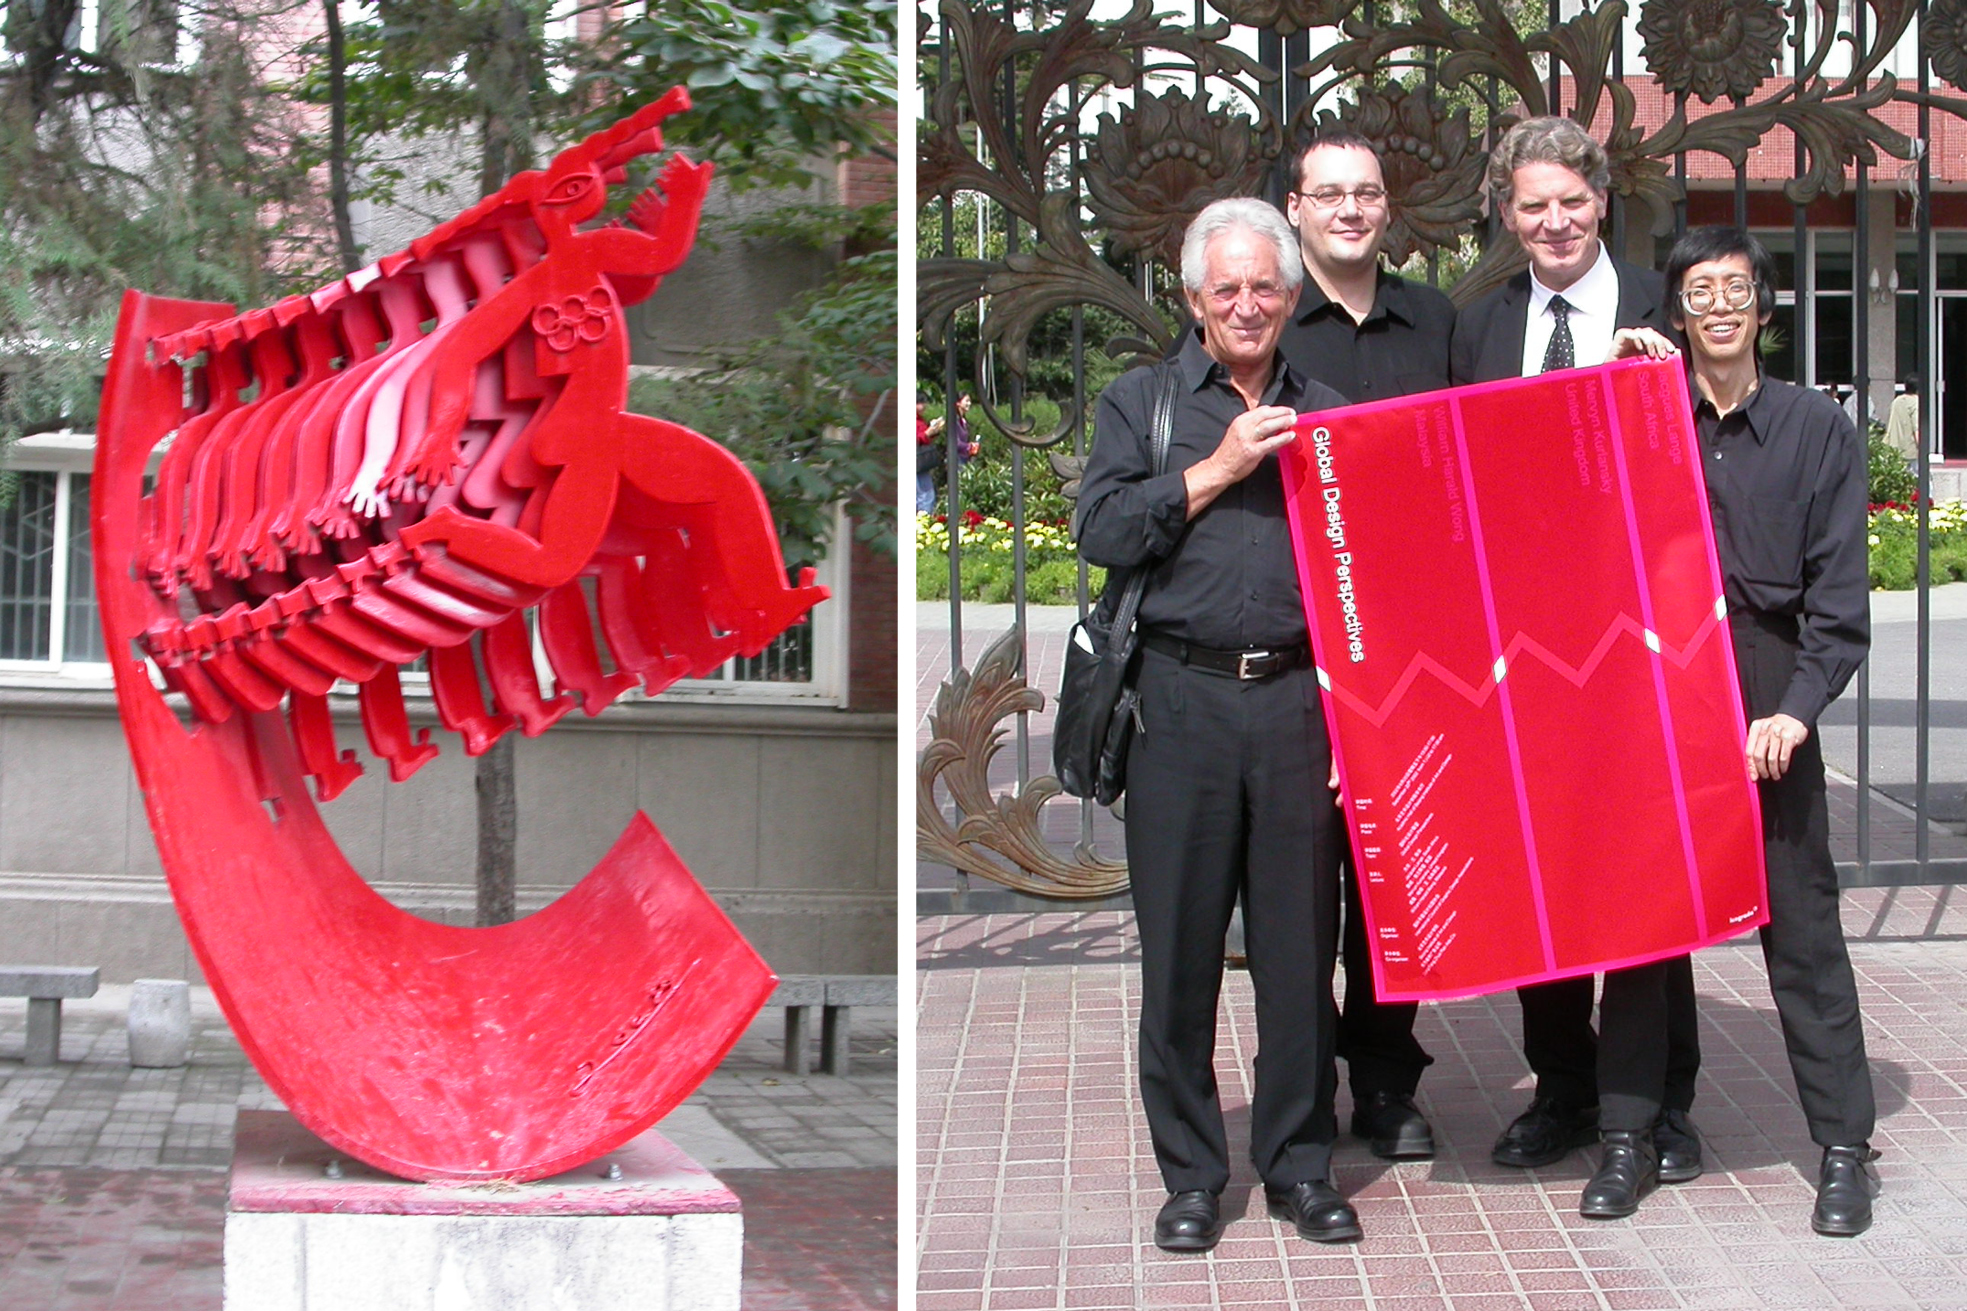 whwWeb_About_whw_Activities_CN_Beijing_Sculpture & Lecture.jpg